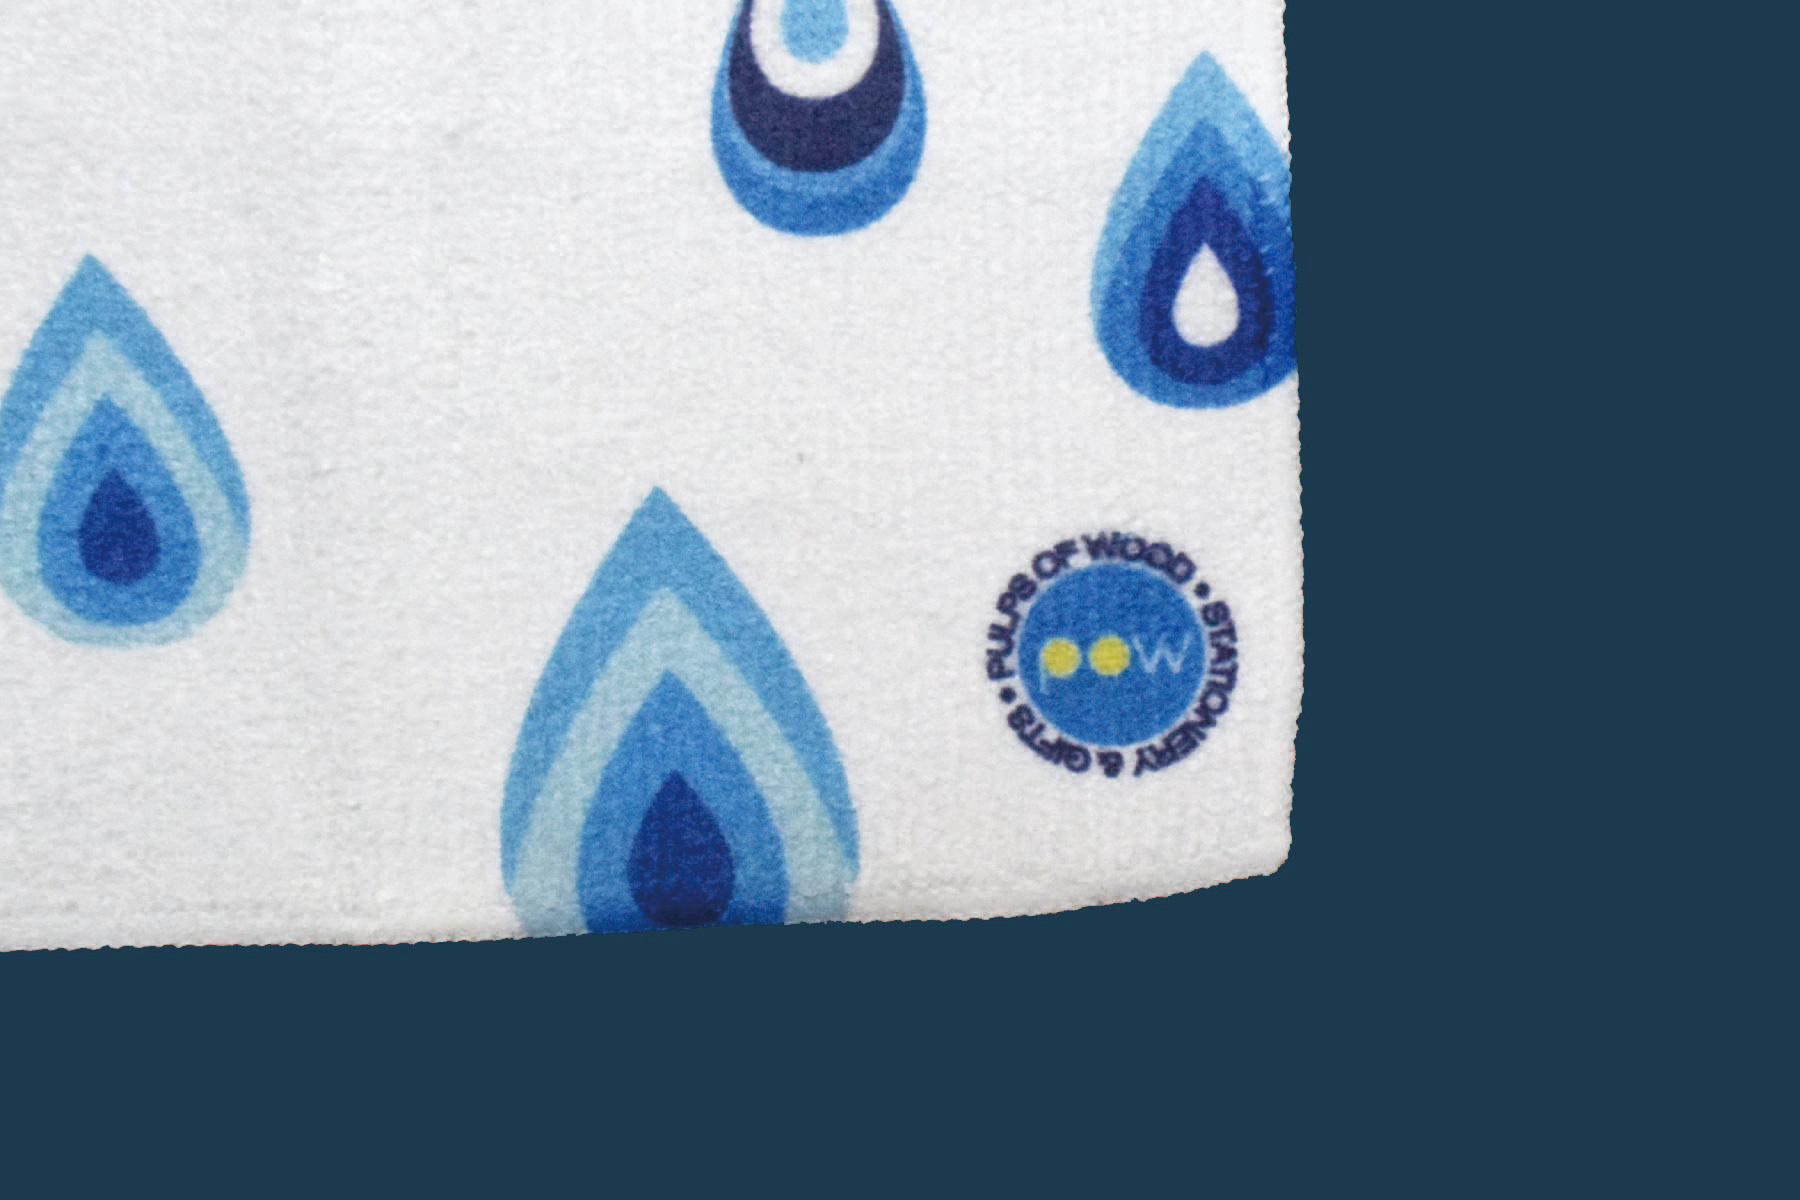 Square Face Towel | Drip Drop